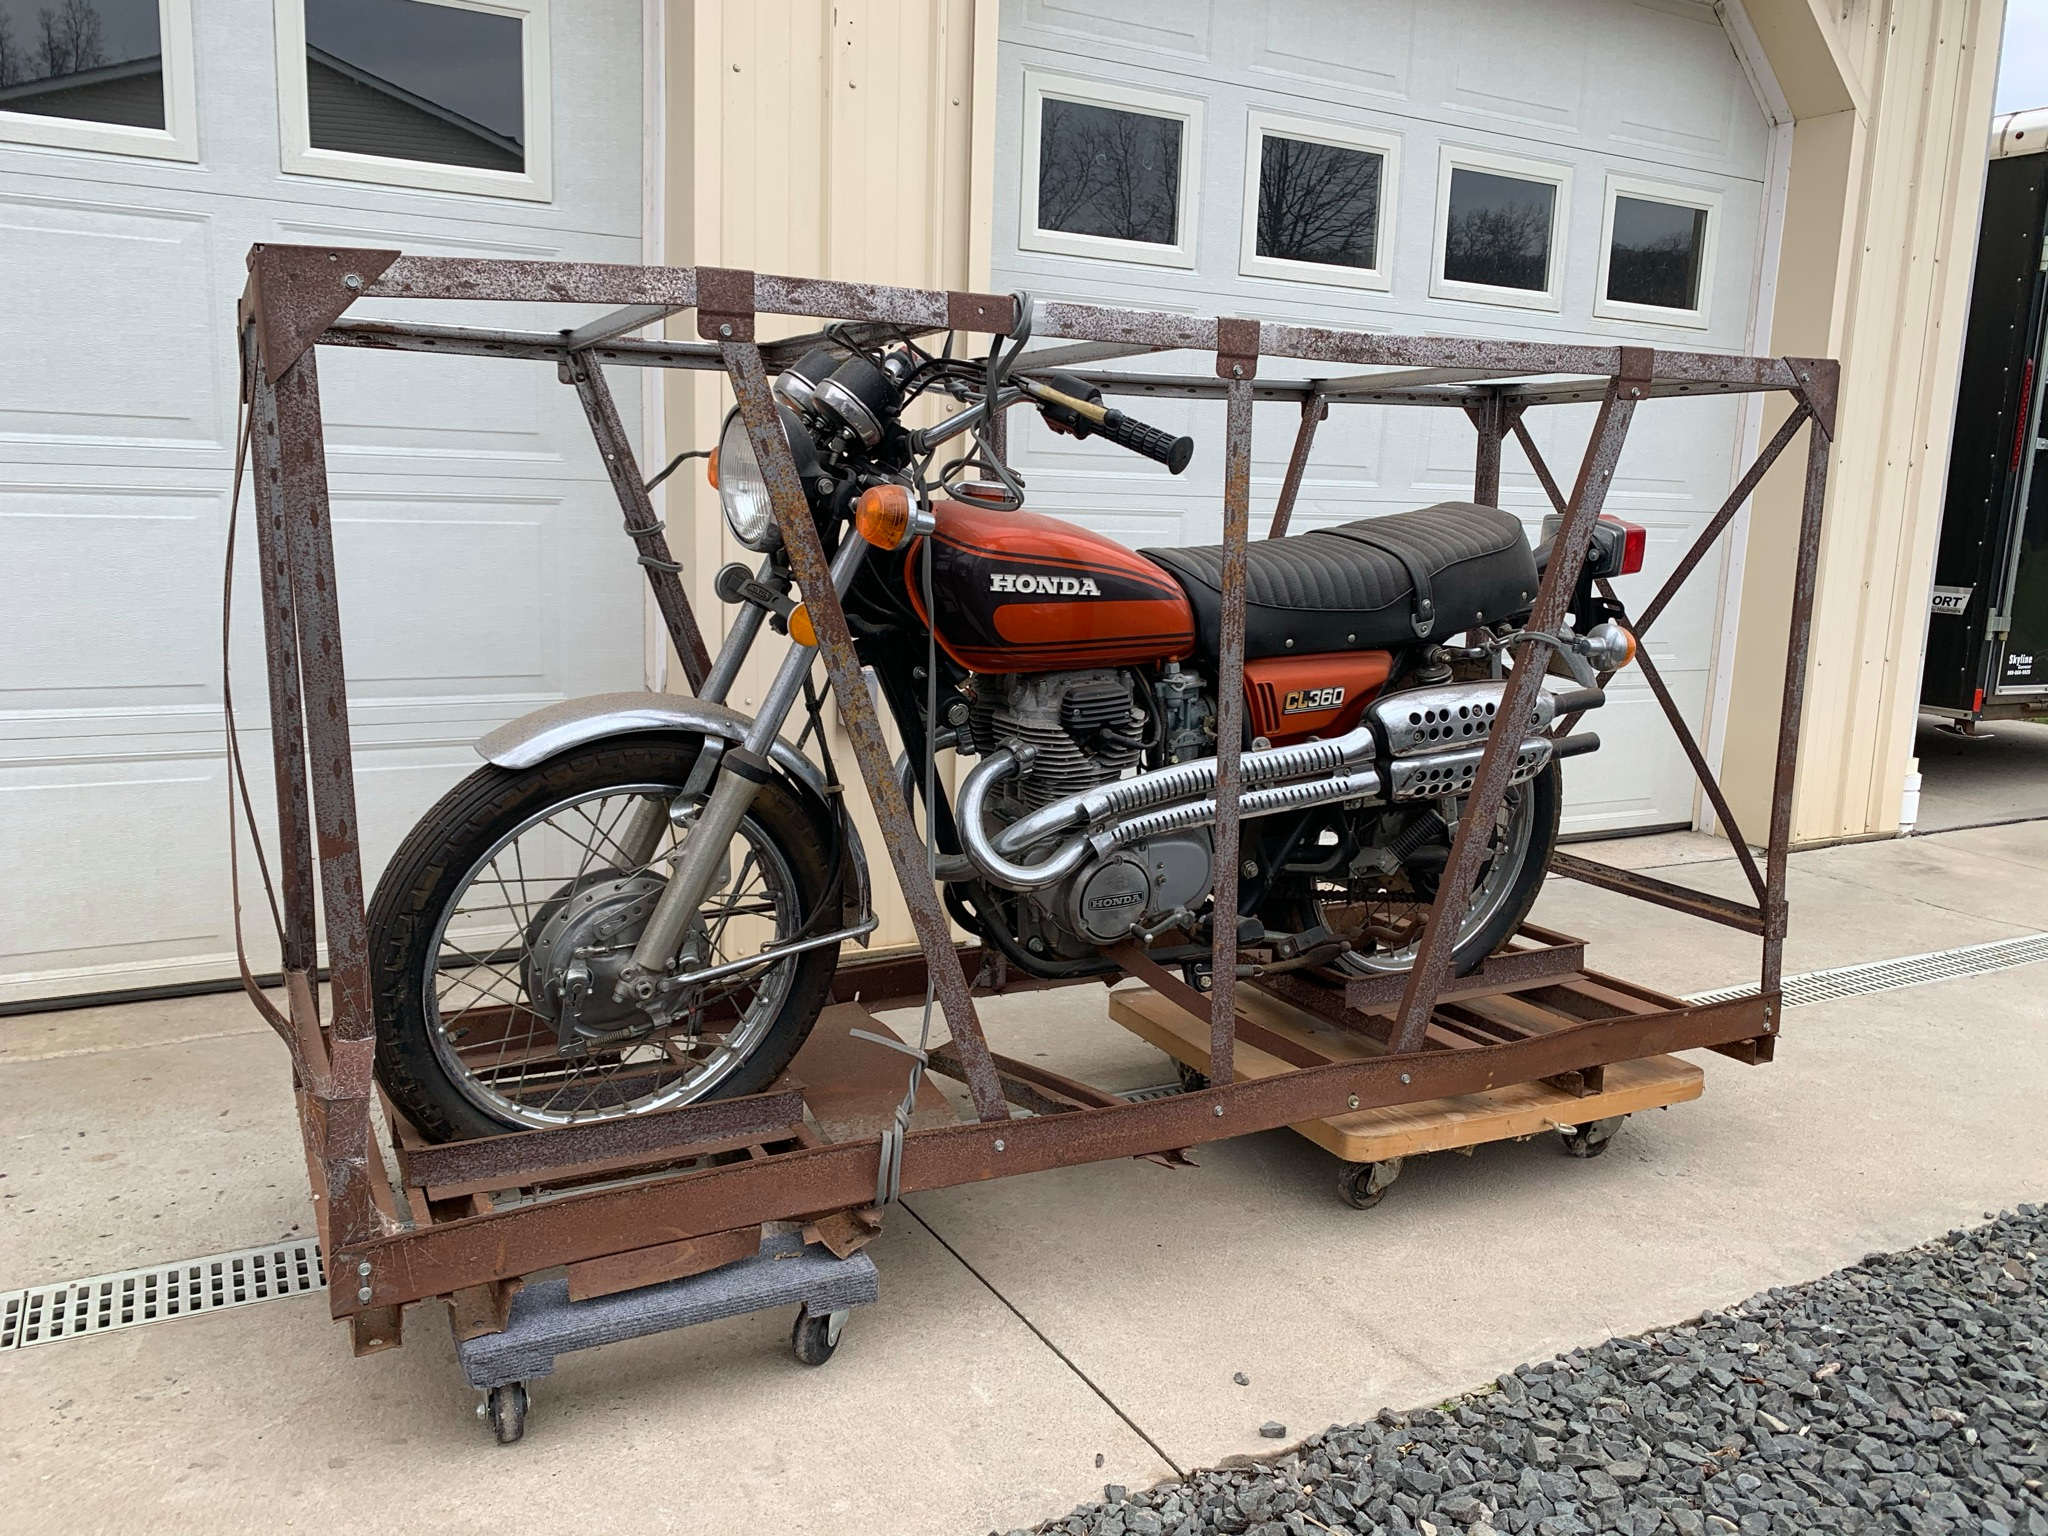 Still in its crate, this Honda CL360 is a 1970s time capsule